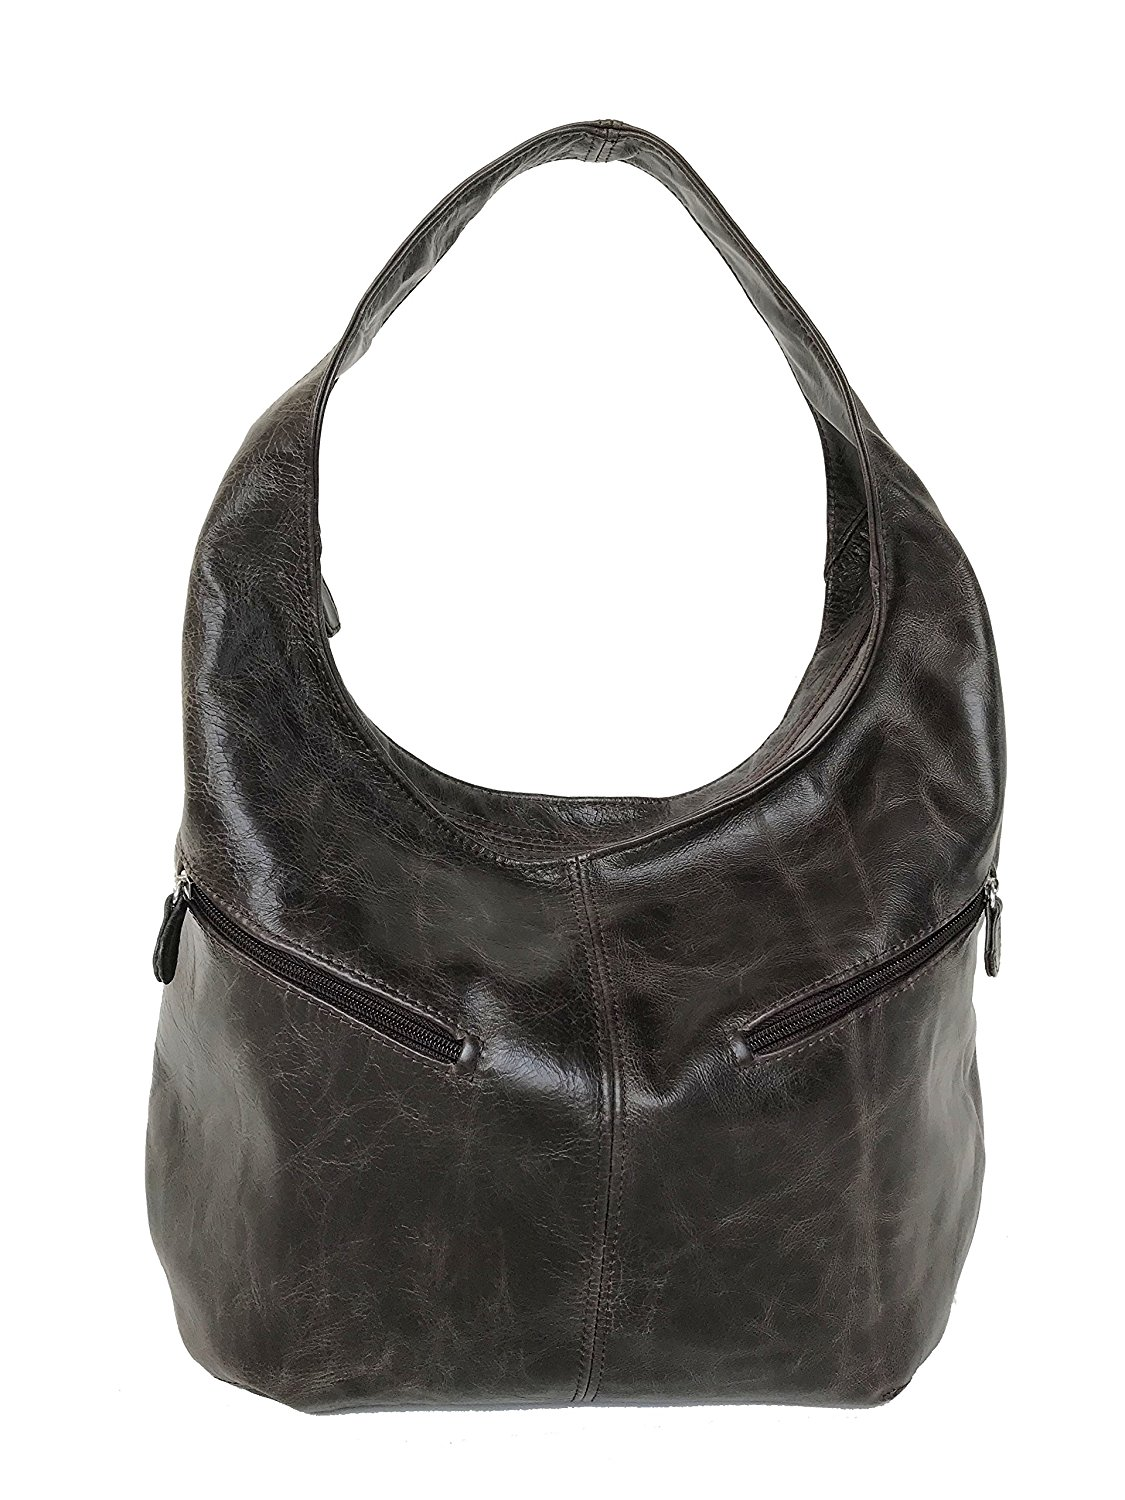 8712674b0c Get Quotations · Fgalaze Distressed Wash Leather Hobo Purse w Pockets